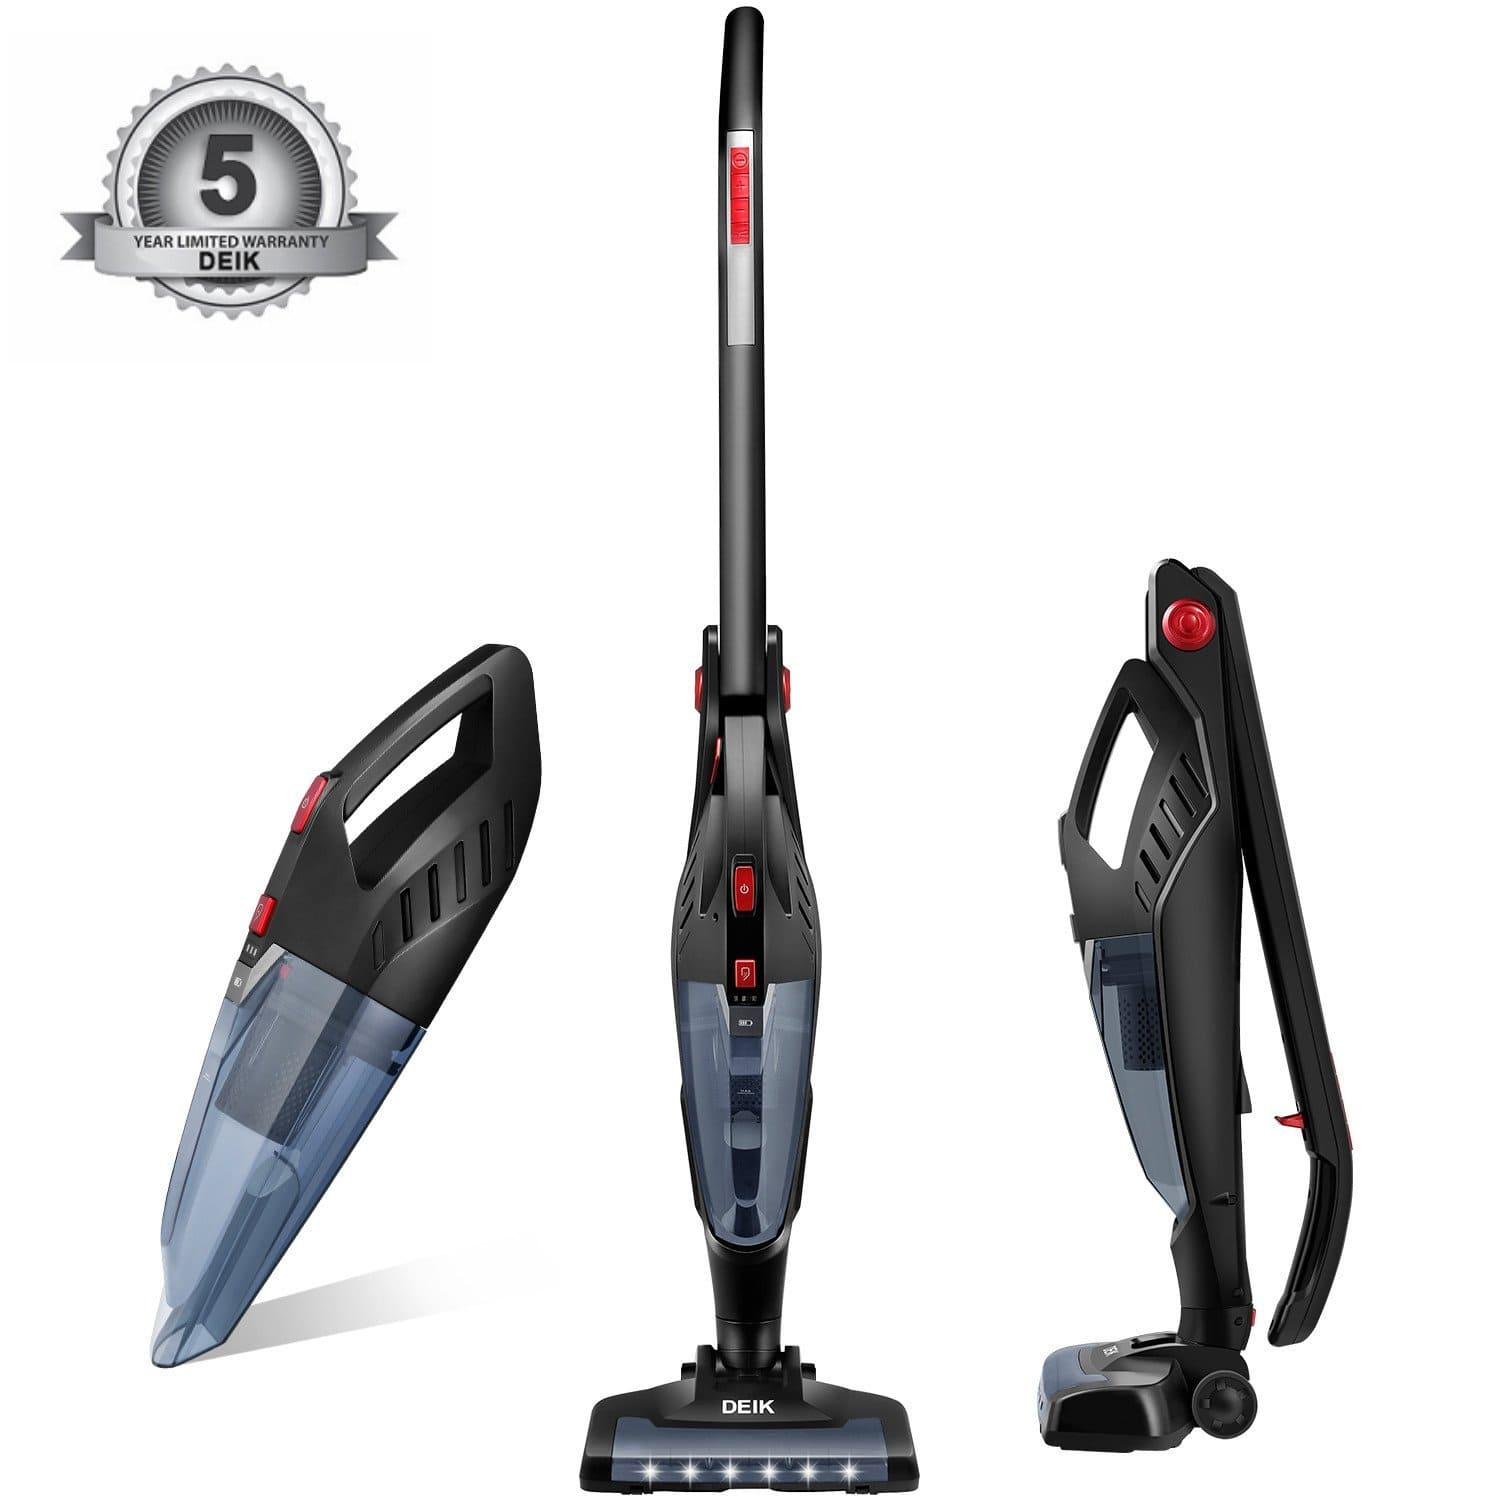 Deik 2 in 1 Cordless Vacuum Cleaner for $68 53 with code free